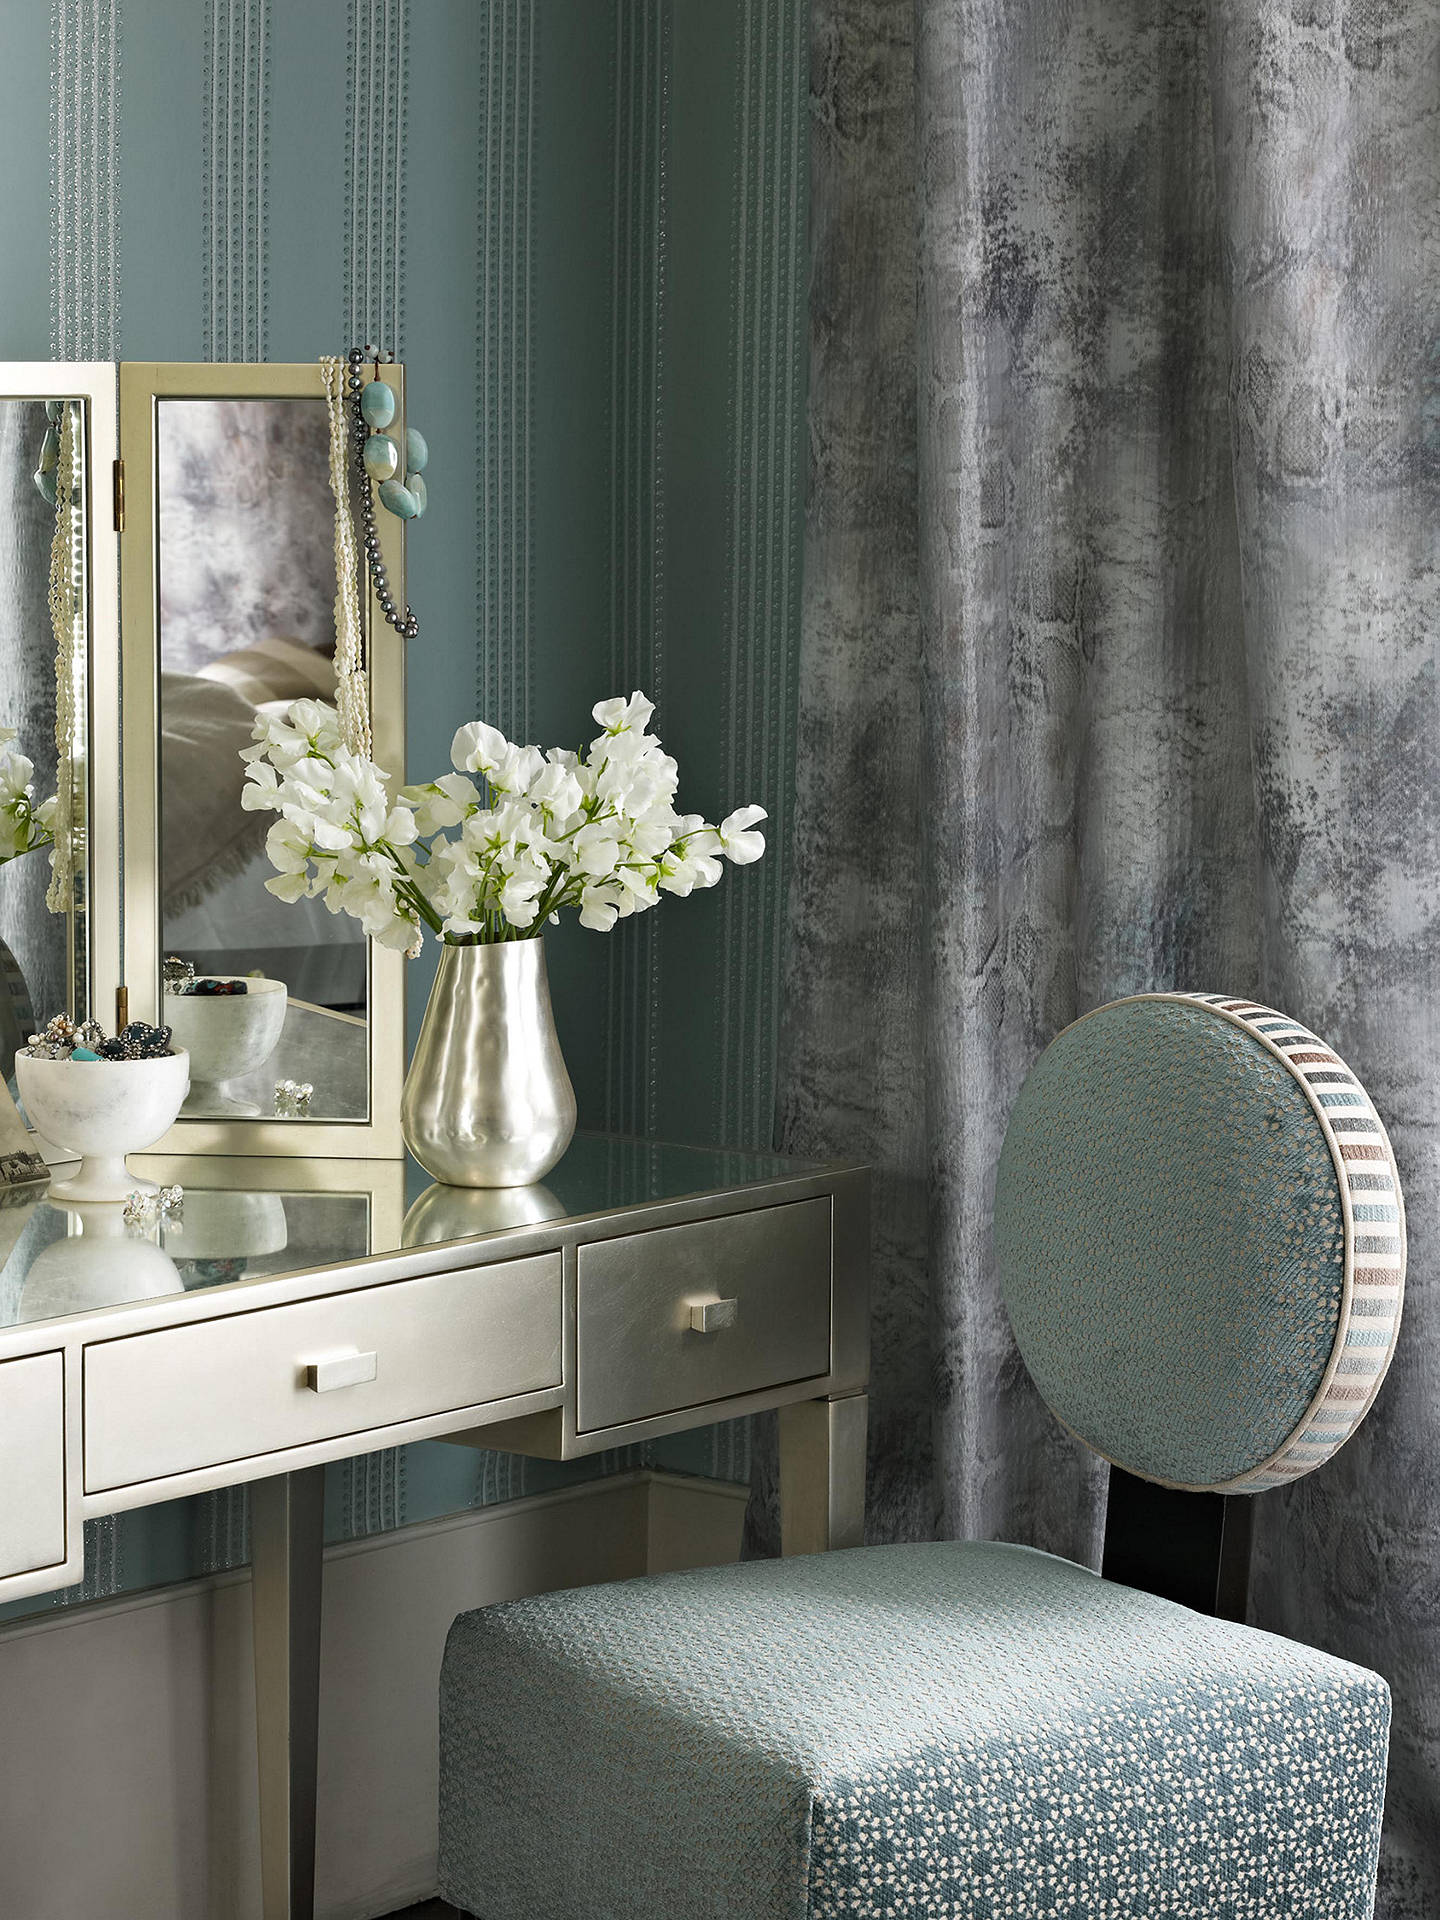 Buy Osborne & Little Paillons Wallpaper, W6435/01 Online at johnlewis.com